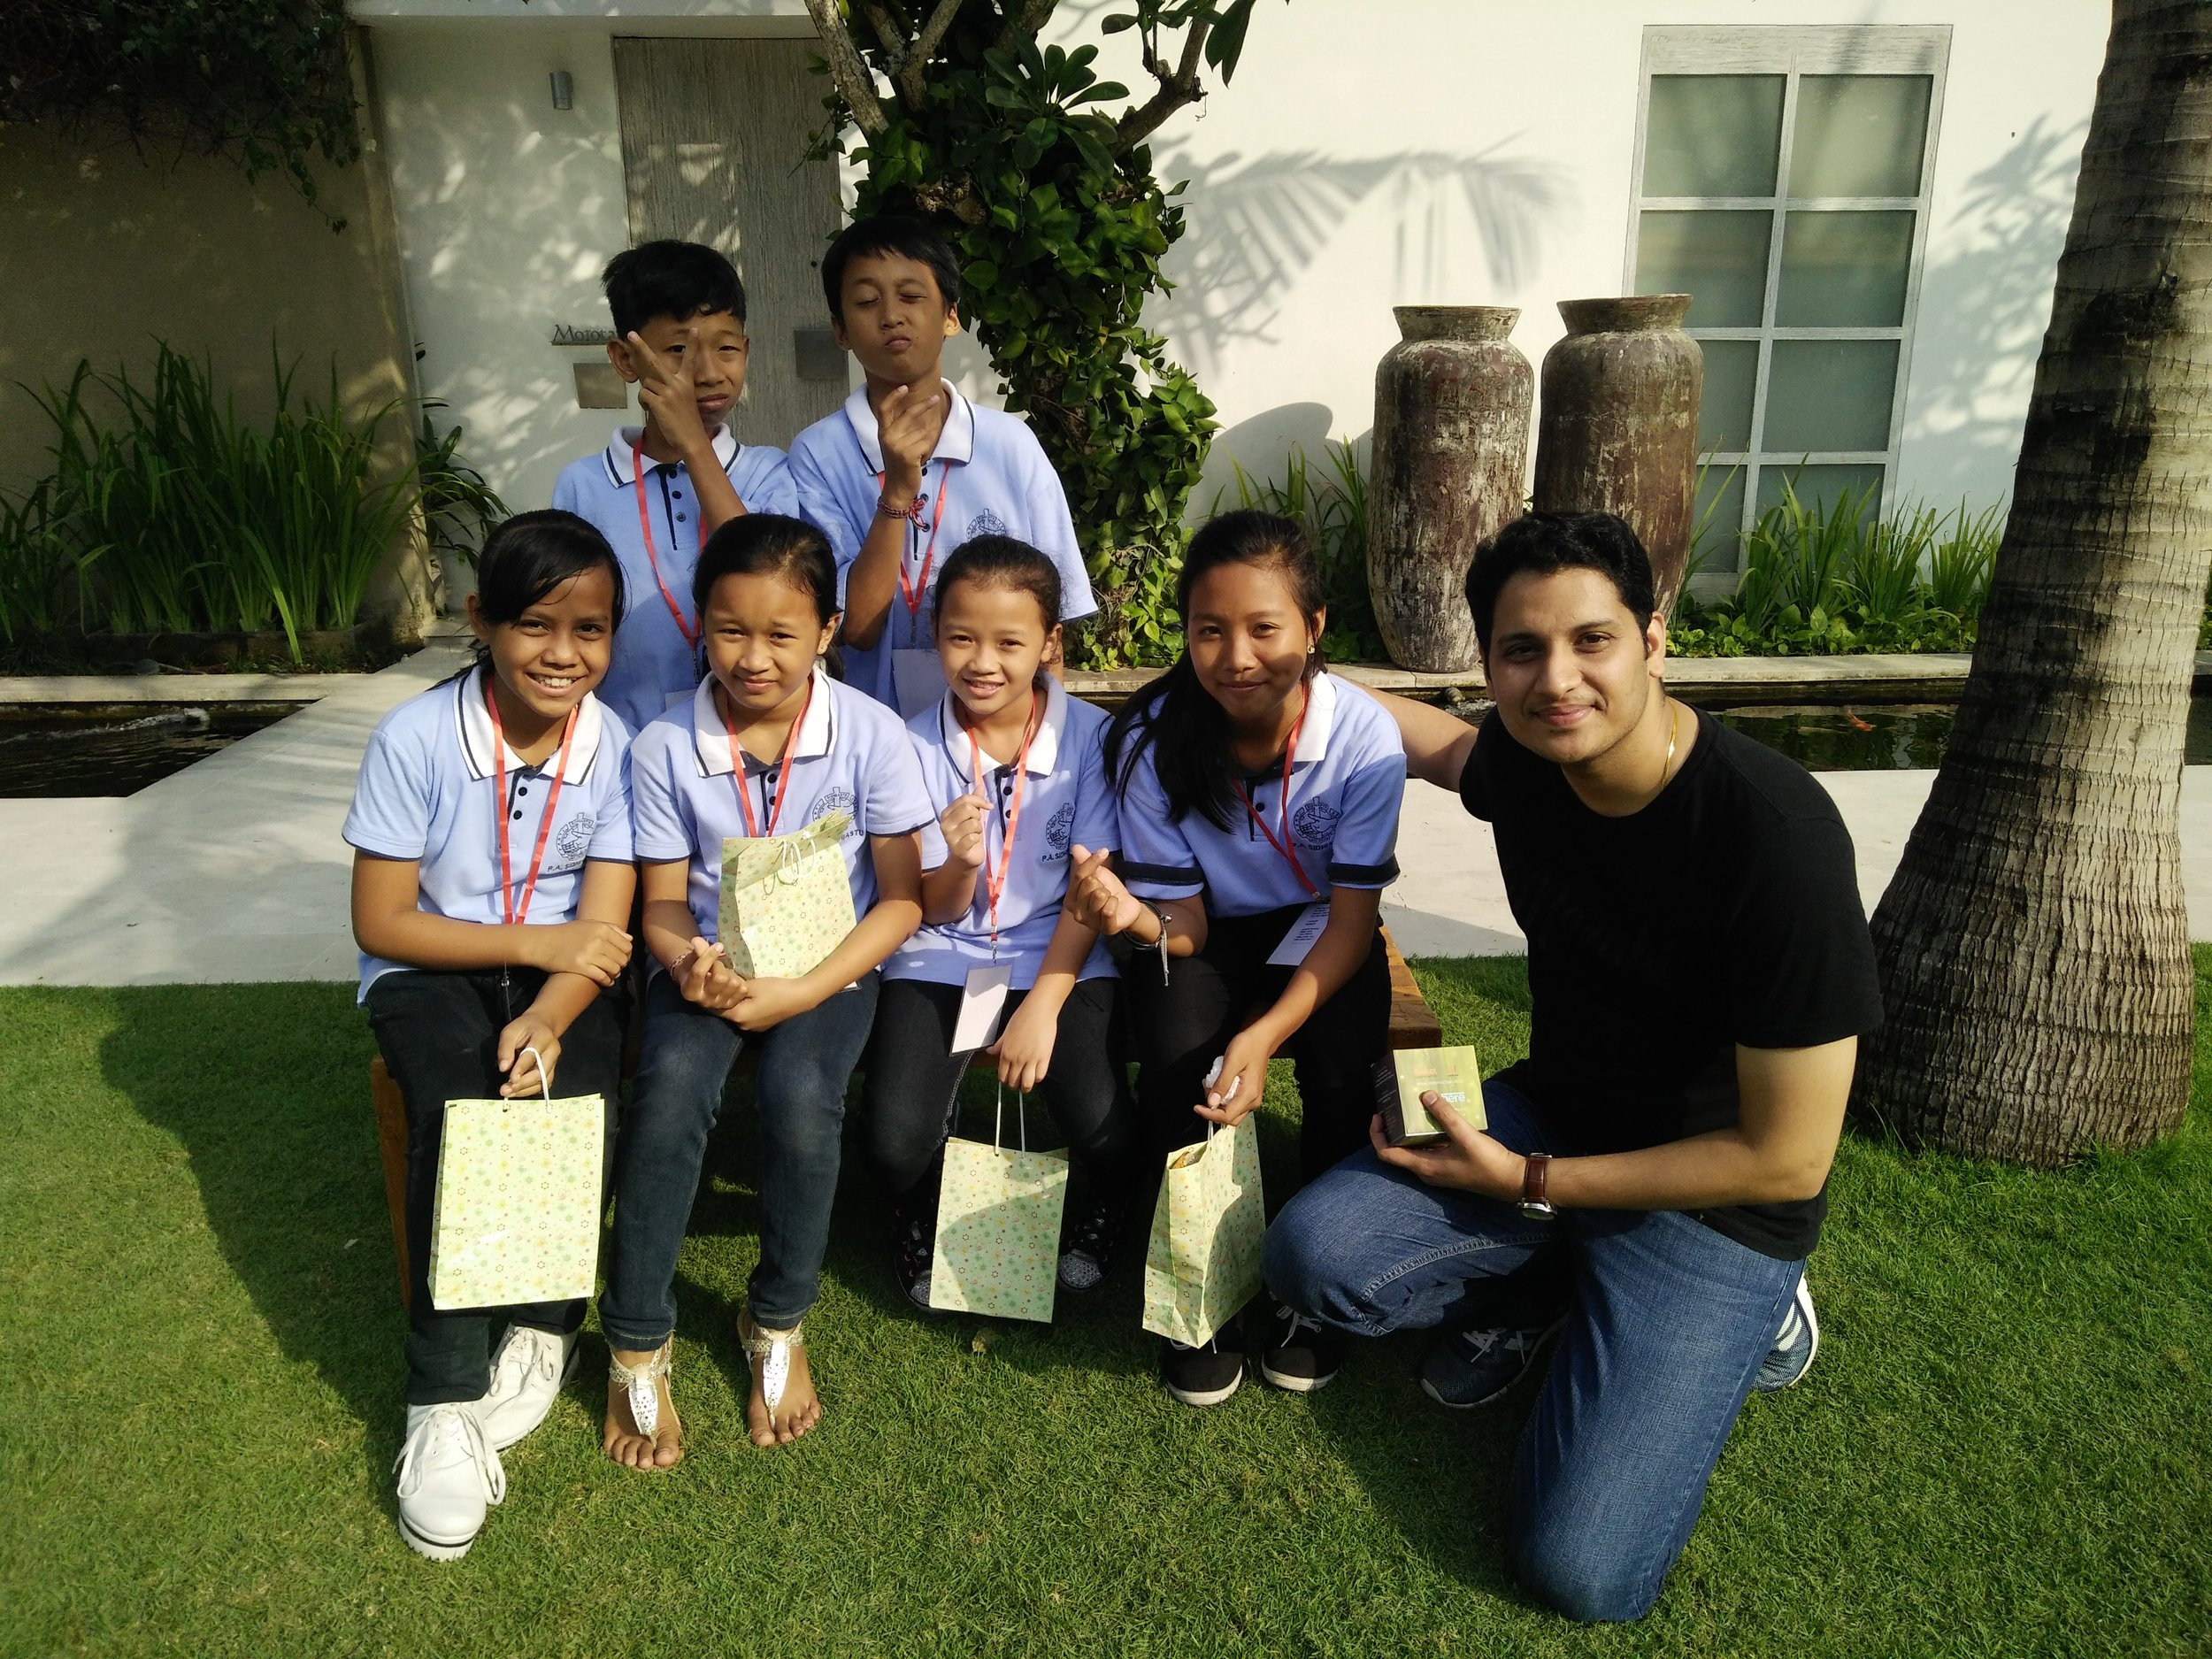 """A Cisco Meraki team leader with a group of orphanage children during a """"Care and Fun"""" Positive Social Impact event in Seminyak, Indonesia."""